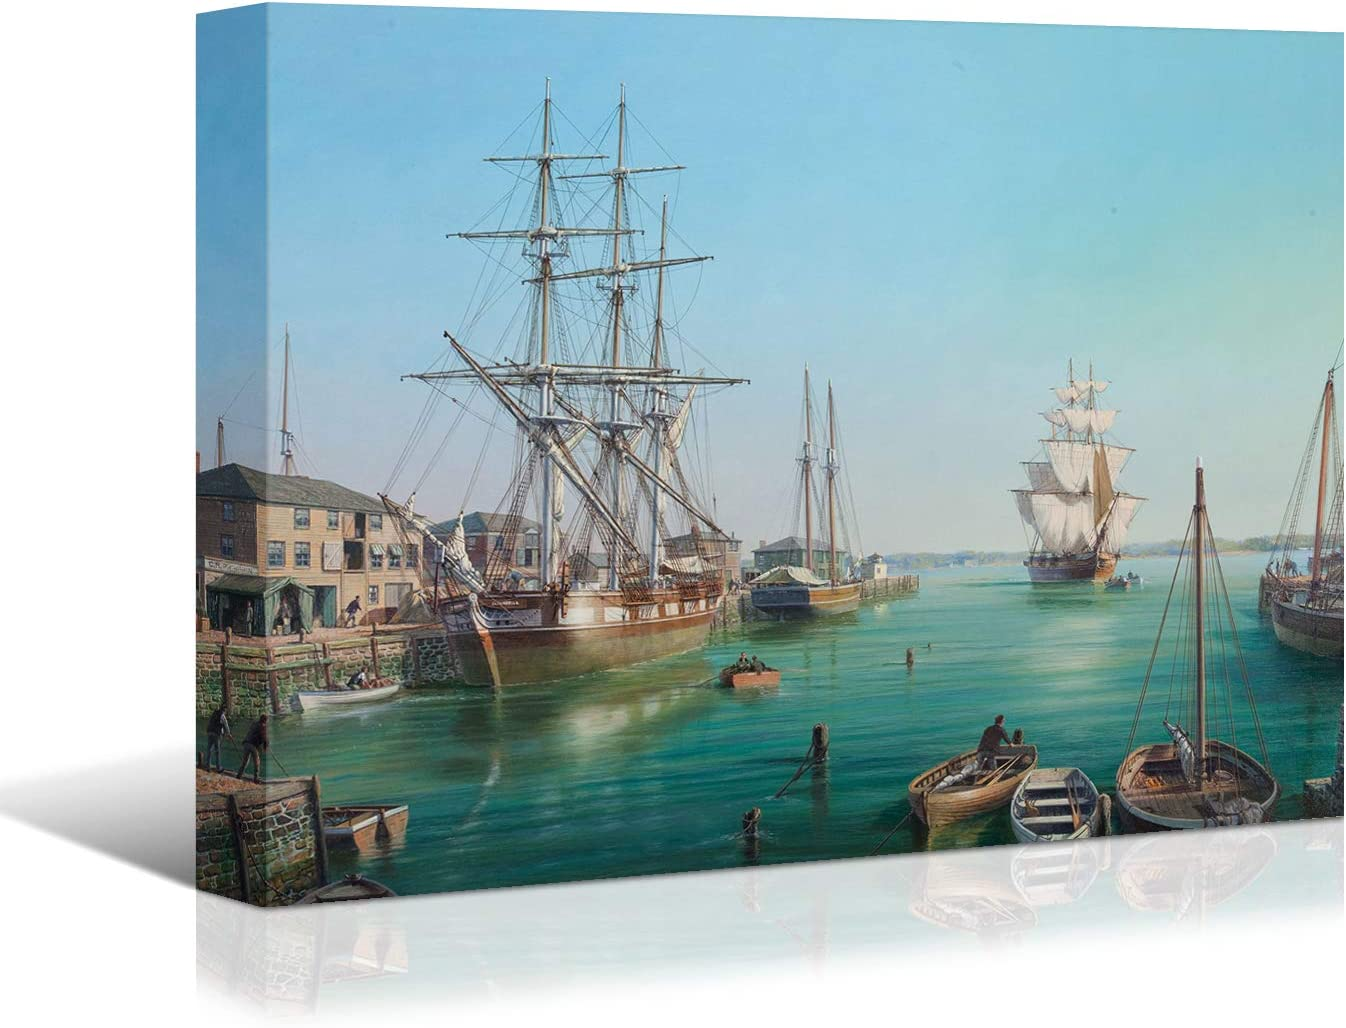 Looife Ocean Theme Canvas Wall Art, 48x36 Inch Sailing Boat with The Pier Coastl Picture Prints Wall Decor, Sailing Ship Painting Deco for Living Room, Bedroom, Bathroom and Hotel, Ready to Hang